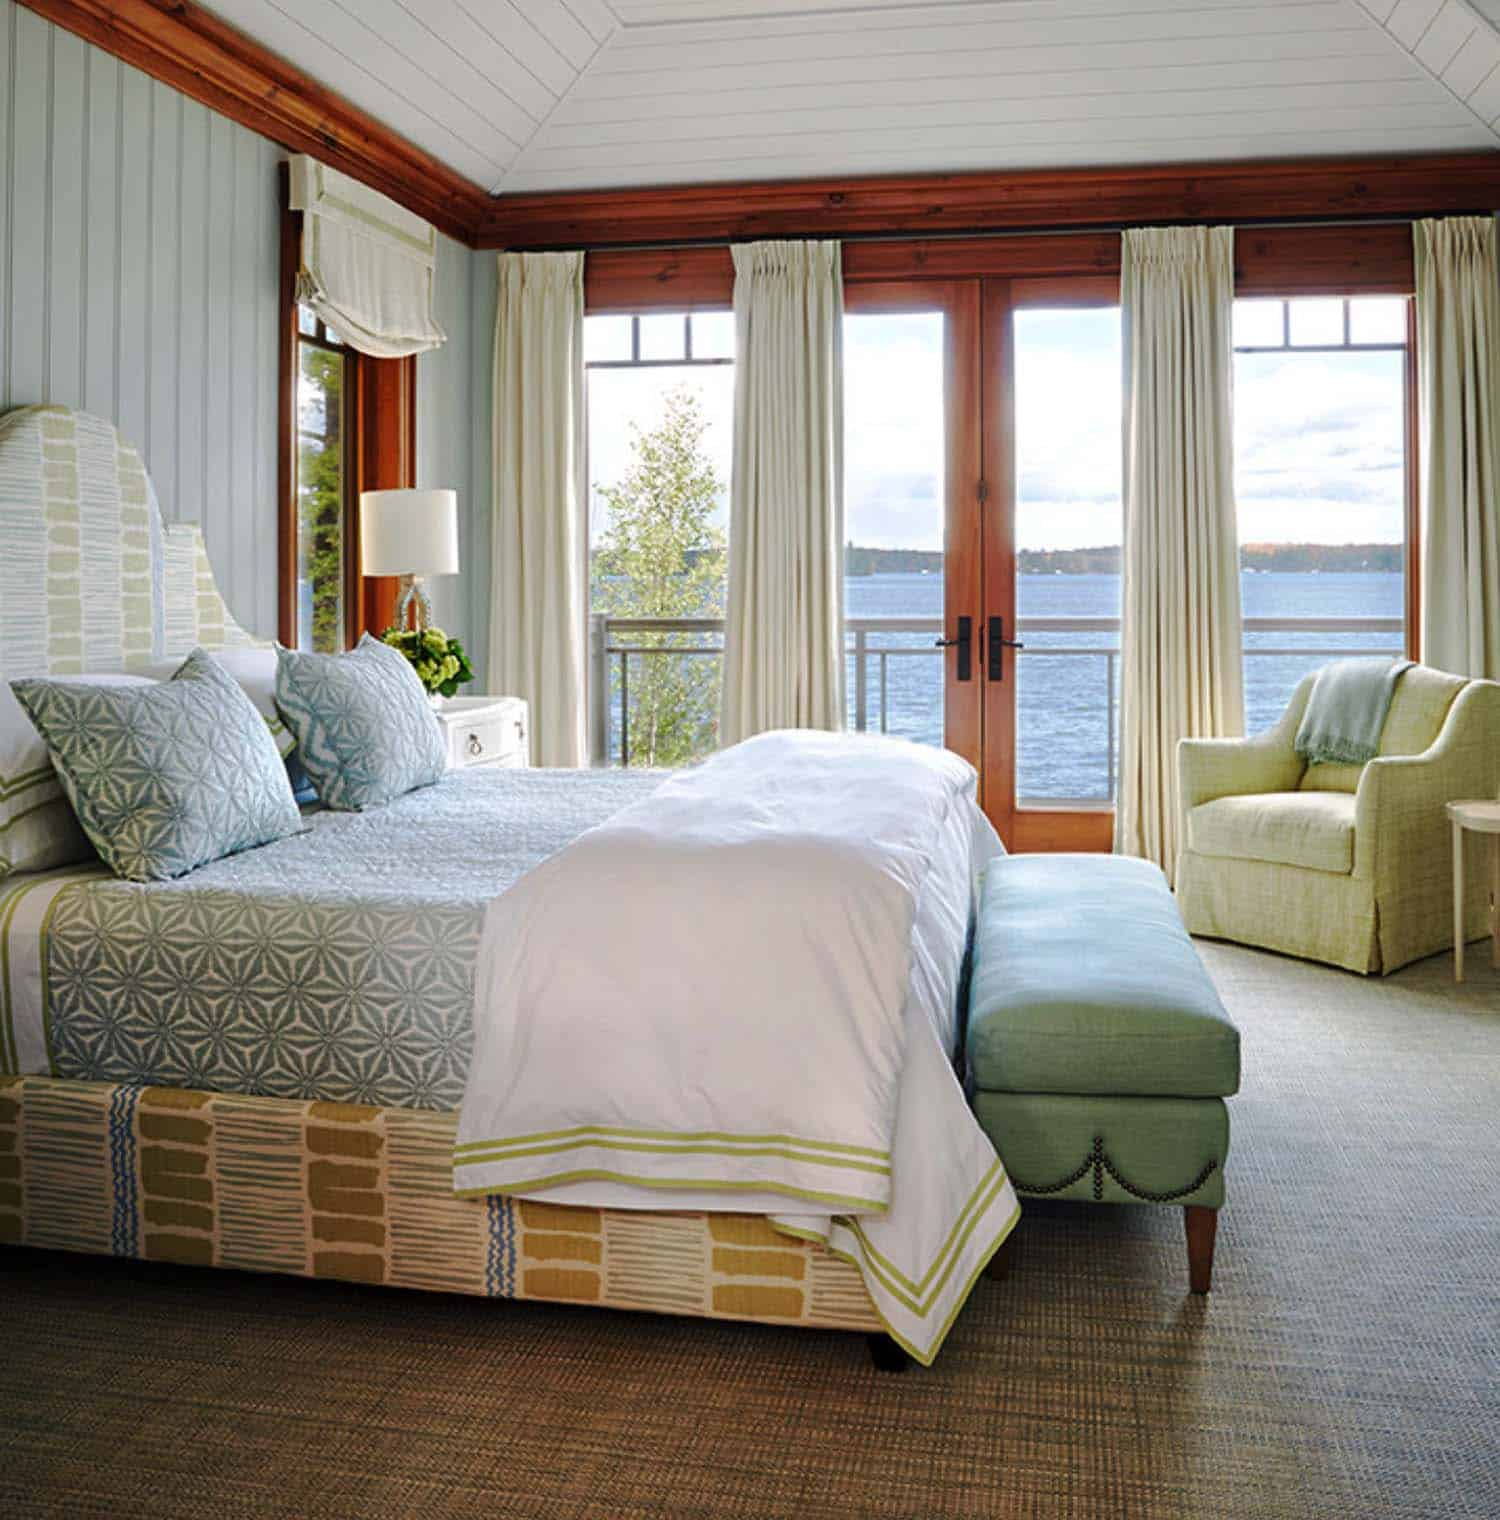 Muskoka Lake House-Anne Hepfer Designs-10-1 Kindesign